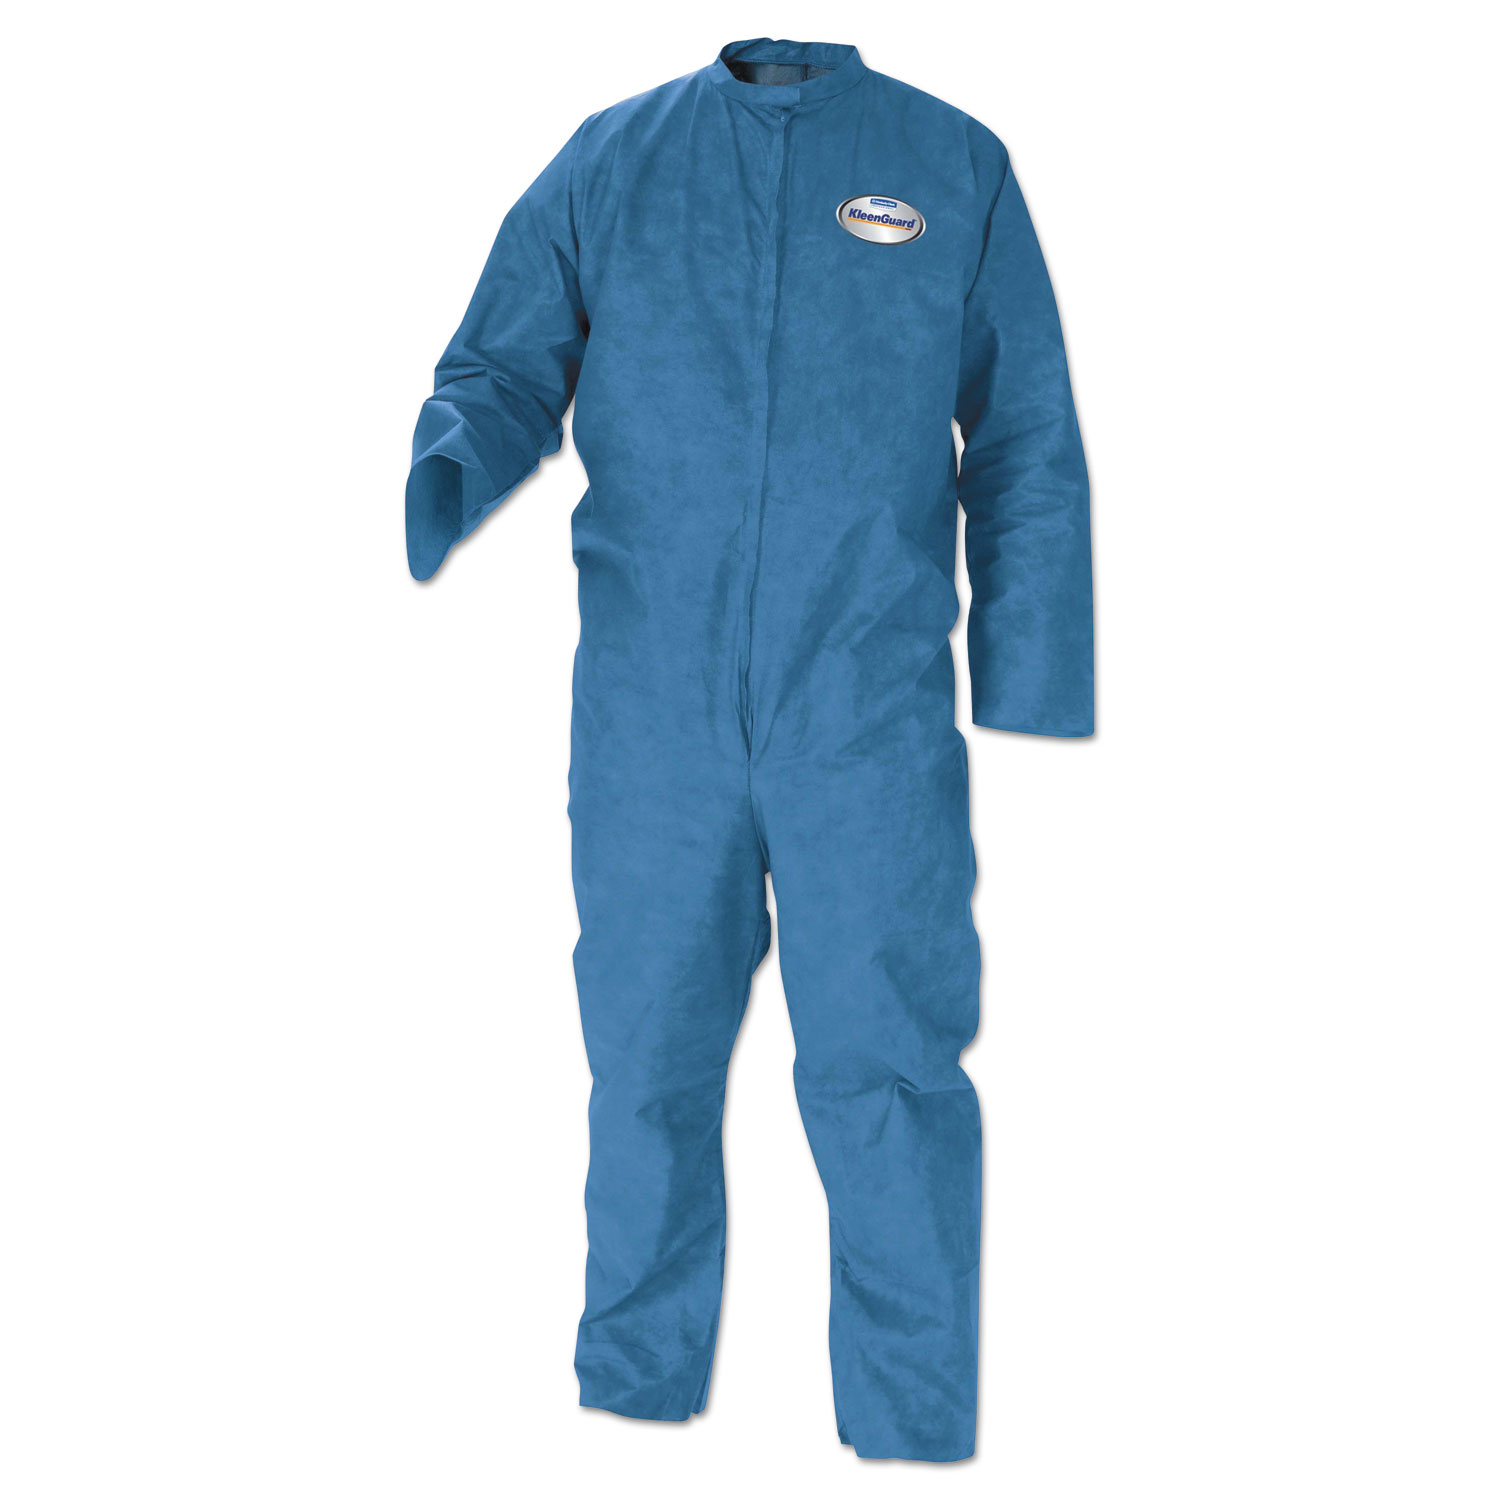 A20 Breathable Particle Protection Coveralls, Blue, Medium, 24/Carton